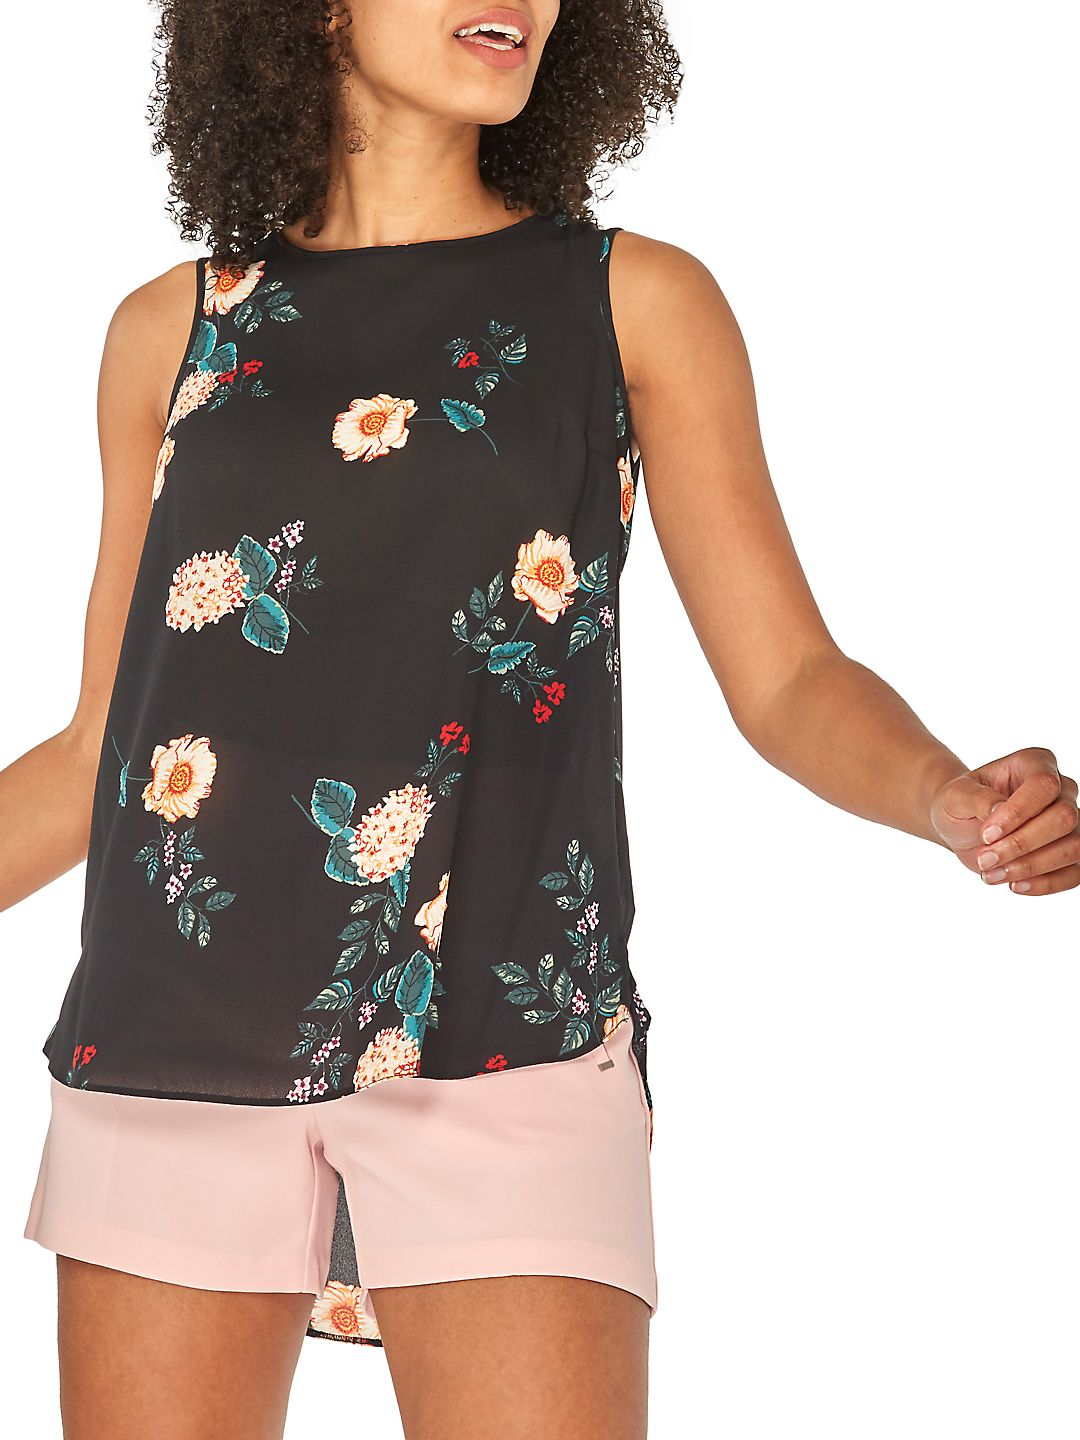 Floral High-Low Sleeveless Top